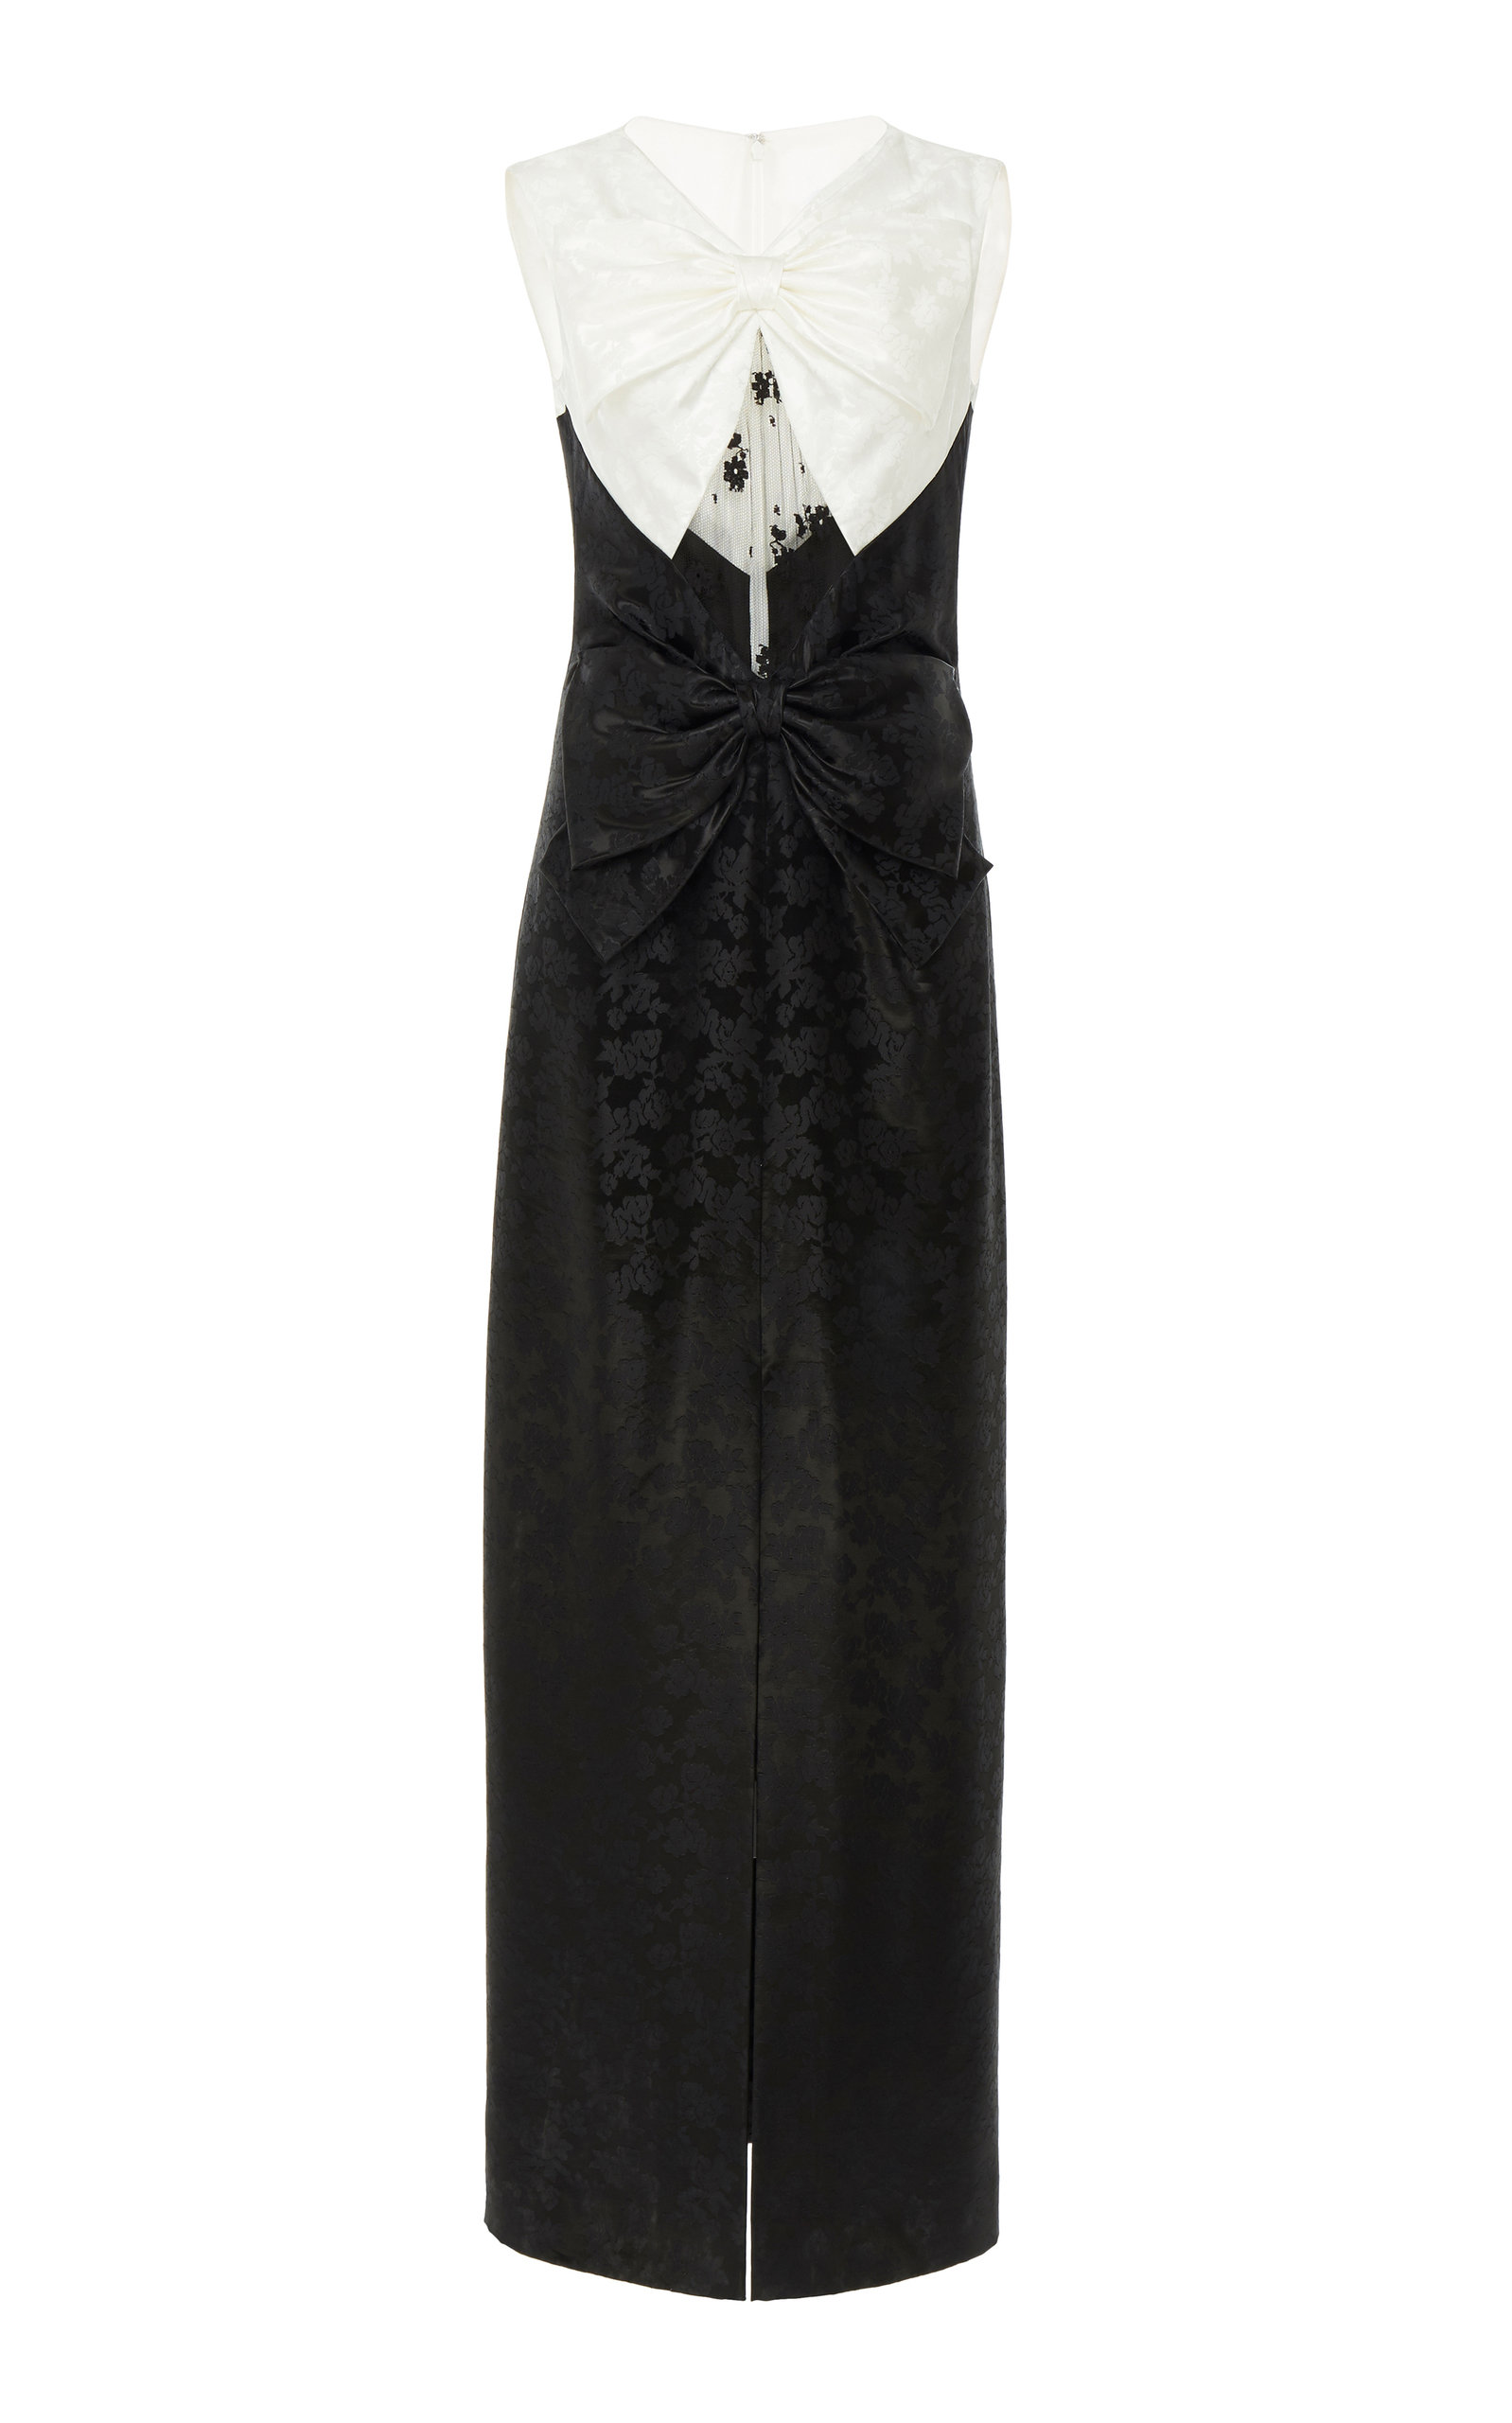 Givenchy Dresses Bow-Embellished Lace-Paneled Floral-Brocade Gown